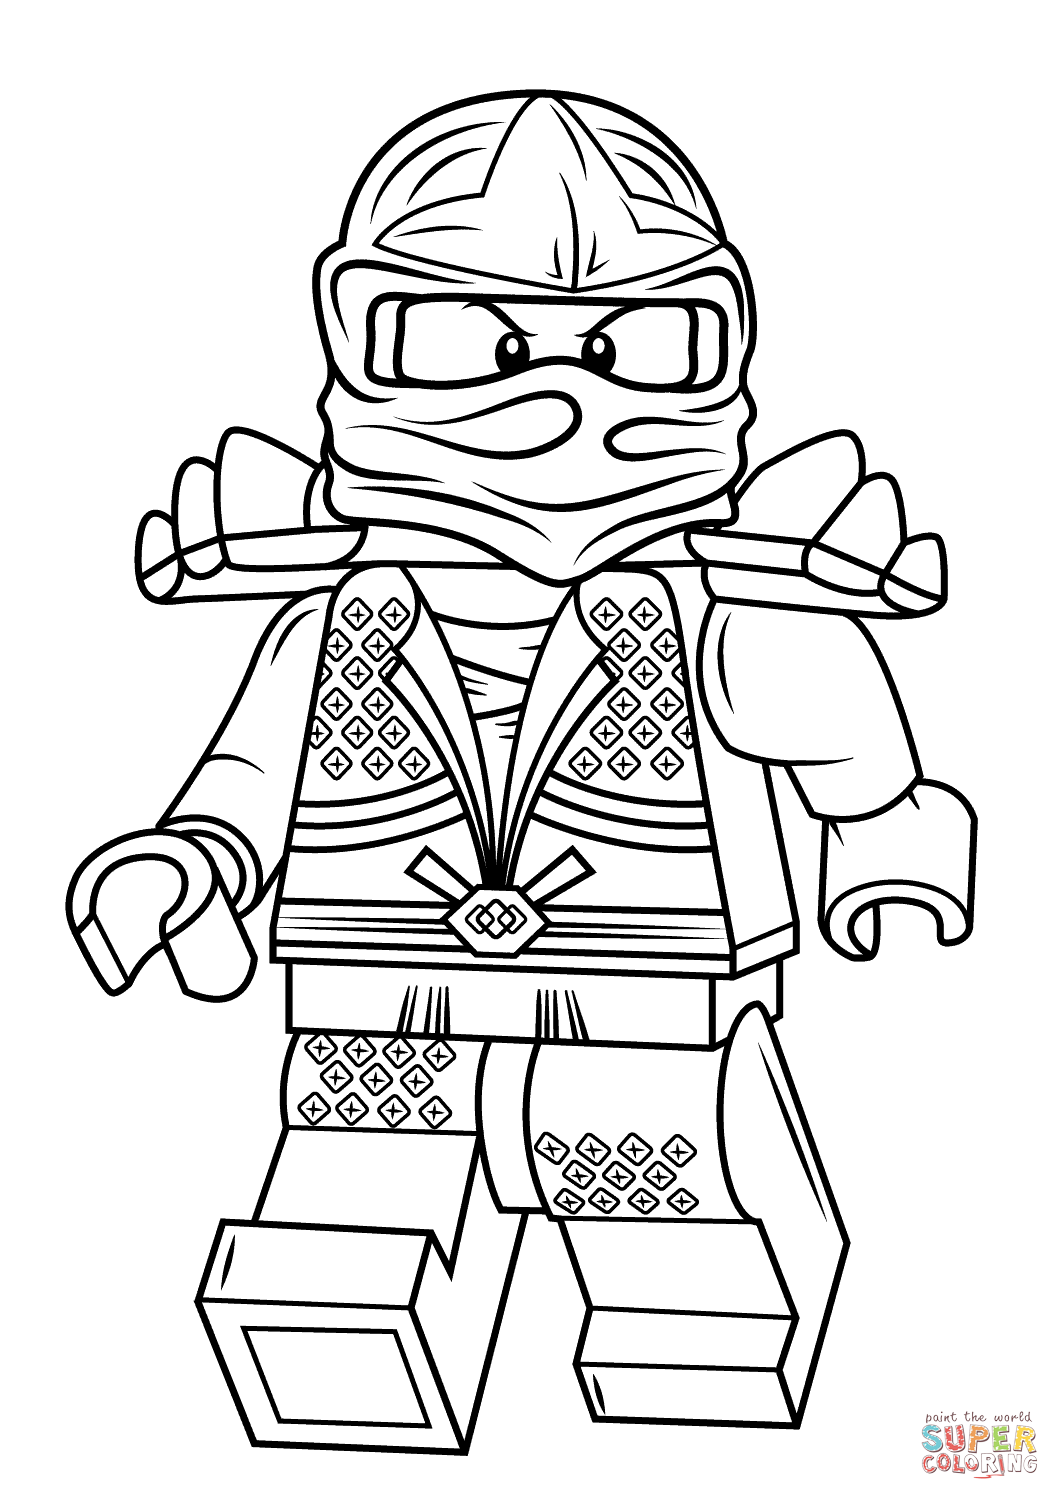 Lego Ninjago Coloring Pages for kids 9